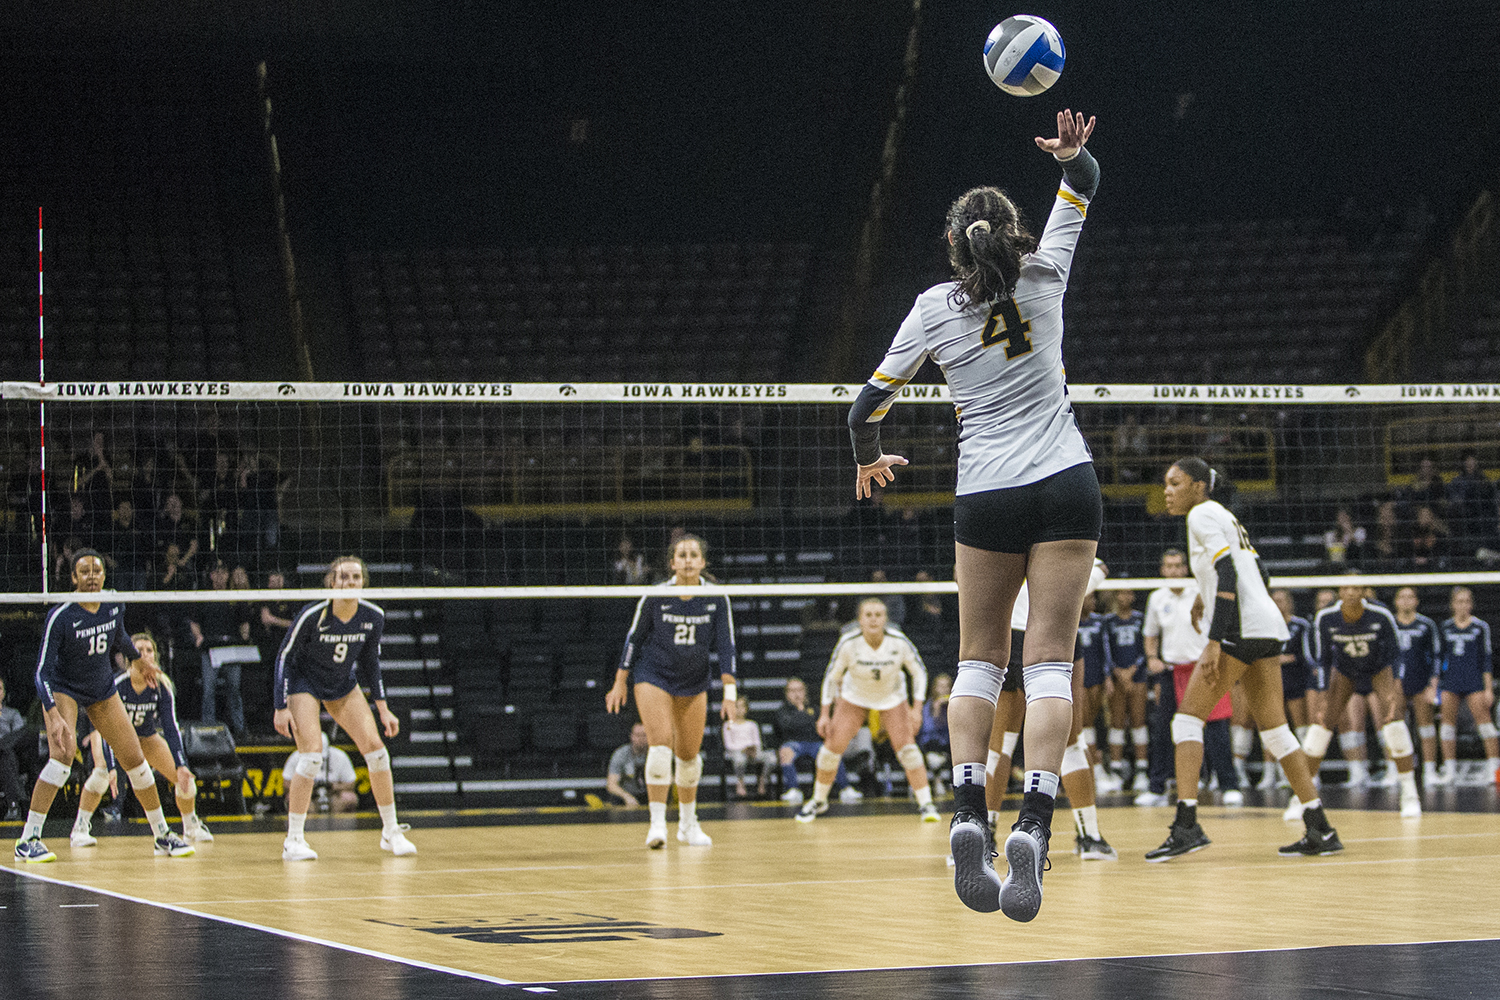 Iowa sophomore Halle Johnston serves during a volleyball match between Iowa and Penn State at Carver-Hawkeye Arena on Saturday, Nov. 3, 2018.